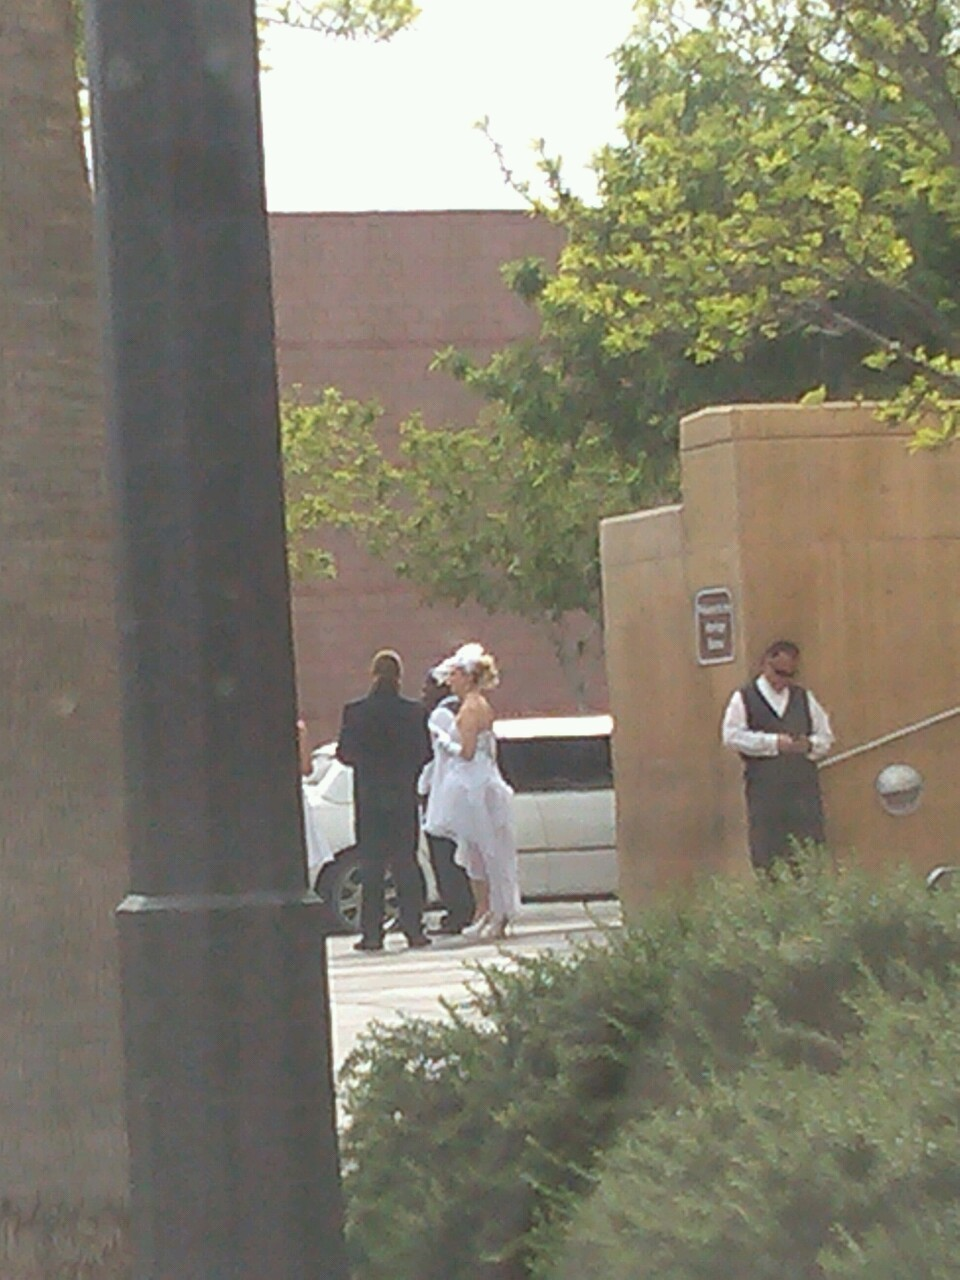 Omg a wedding is happening right now on the street omg how exciting